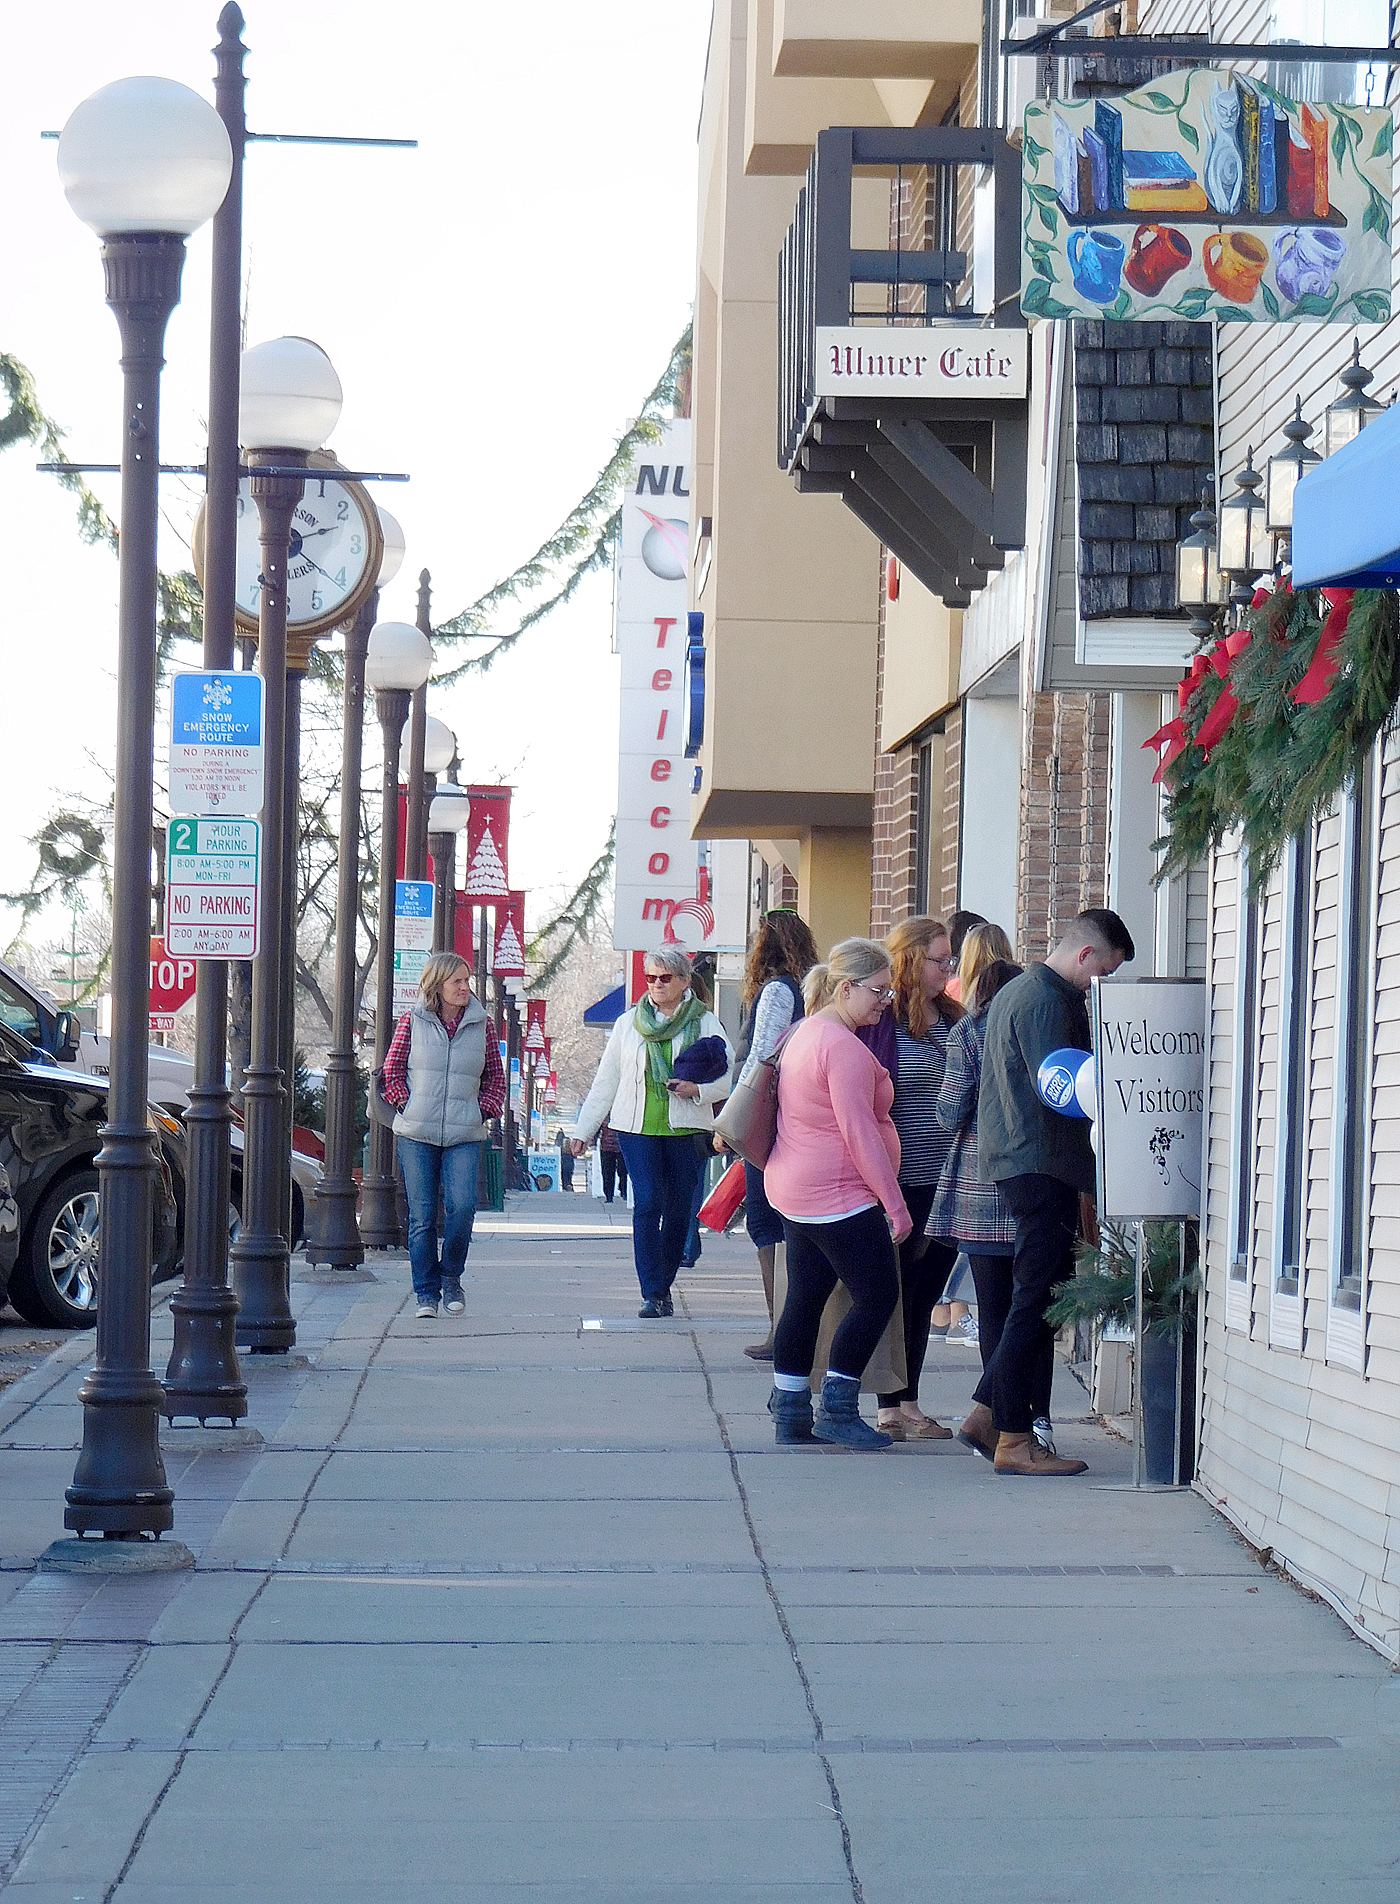 shoppers descend on downtown new ulm over weekend